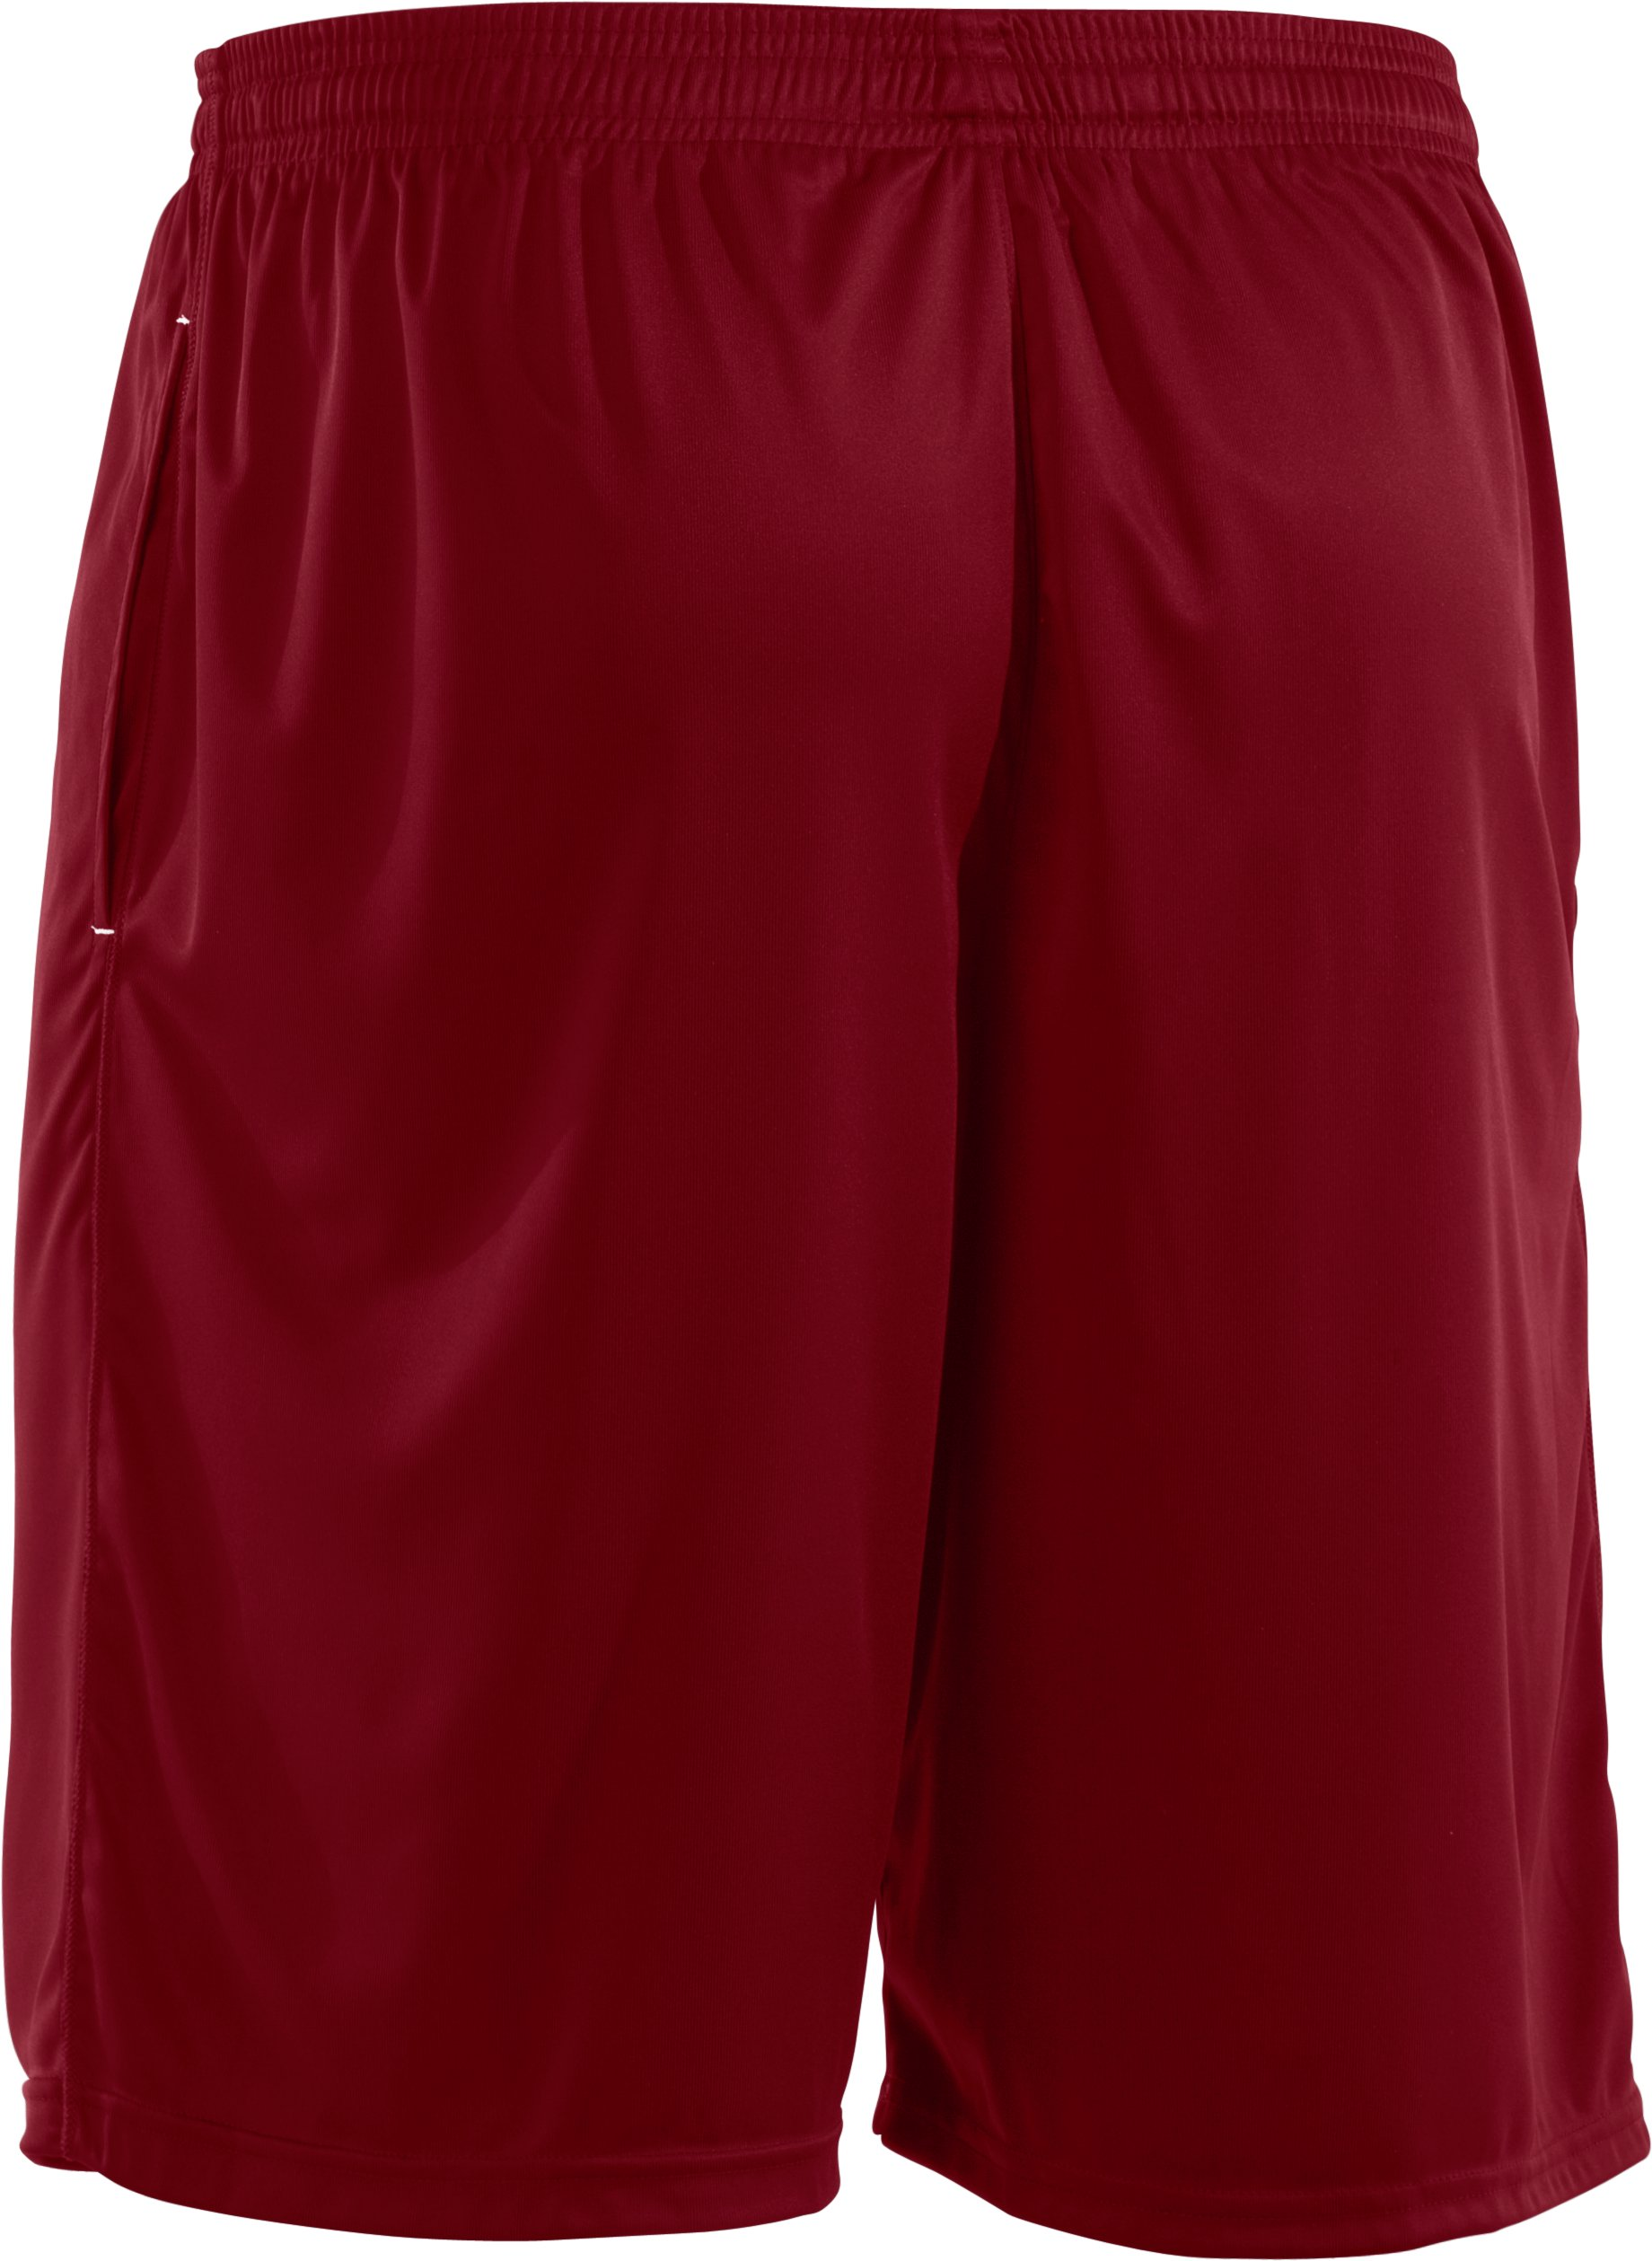 Men's UA Micro Solid Shorts, Crimson